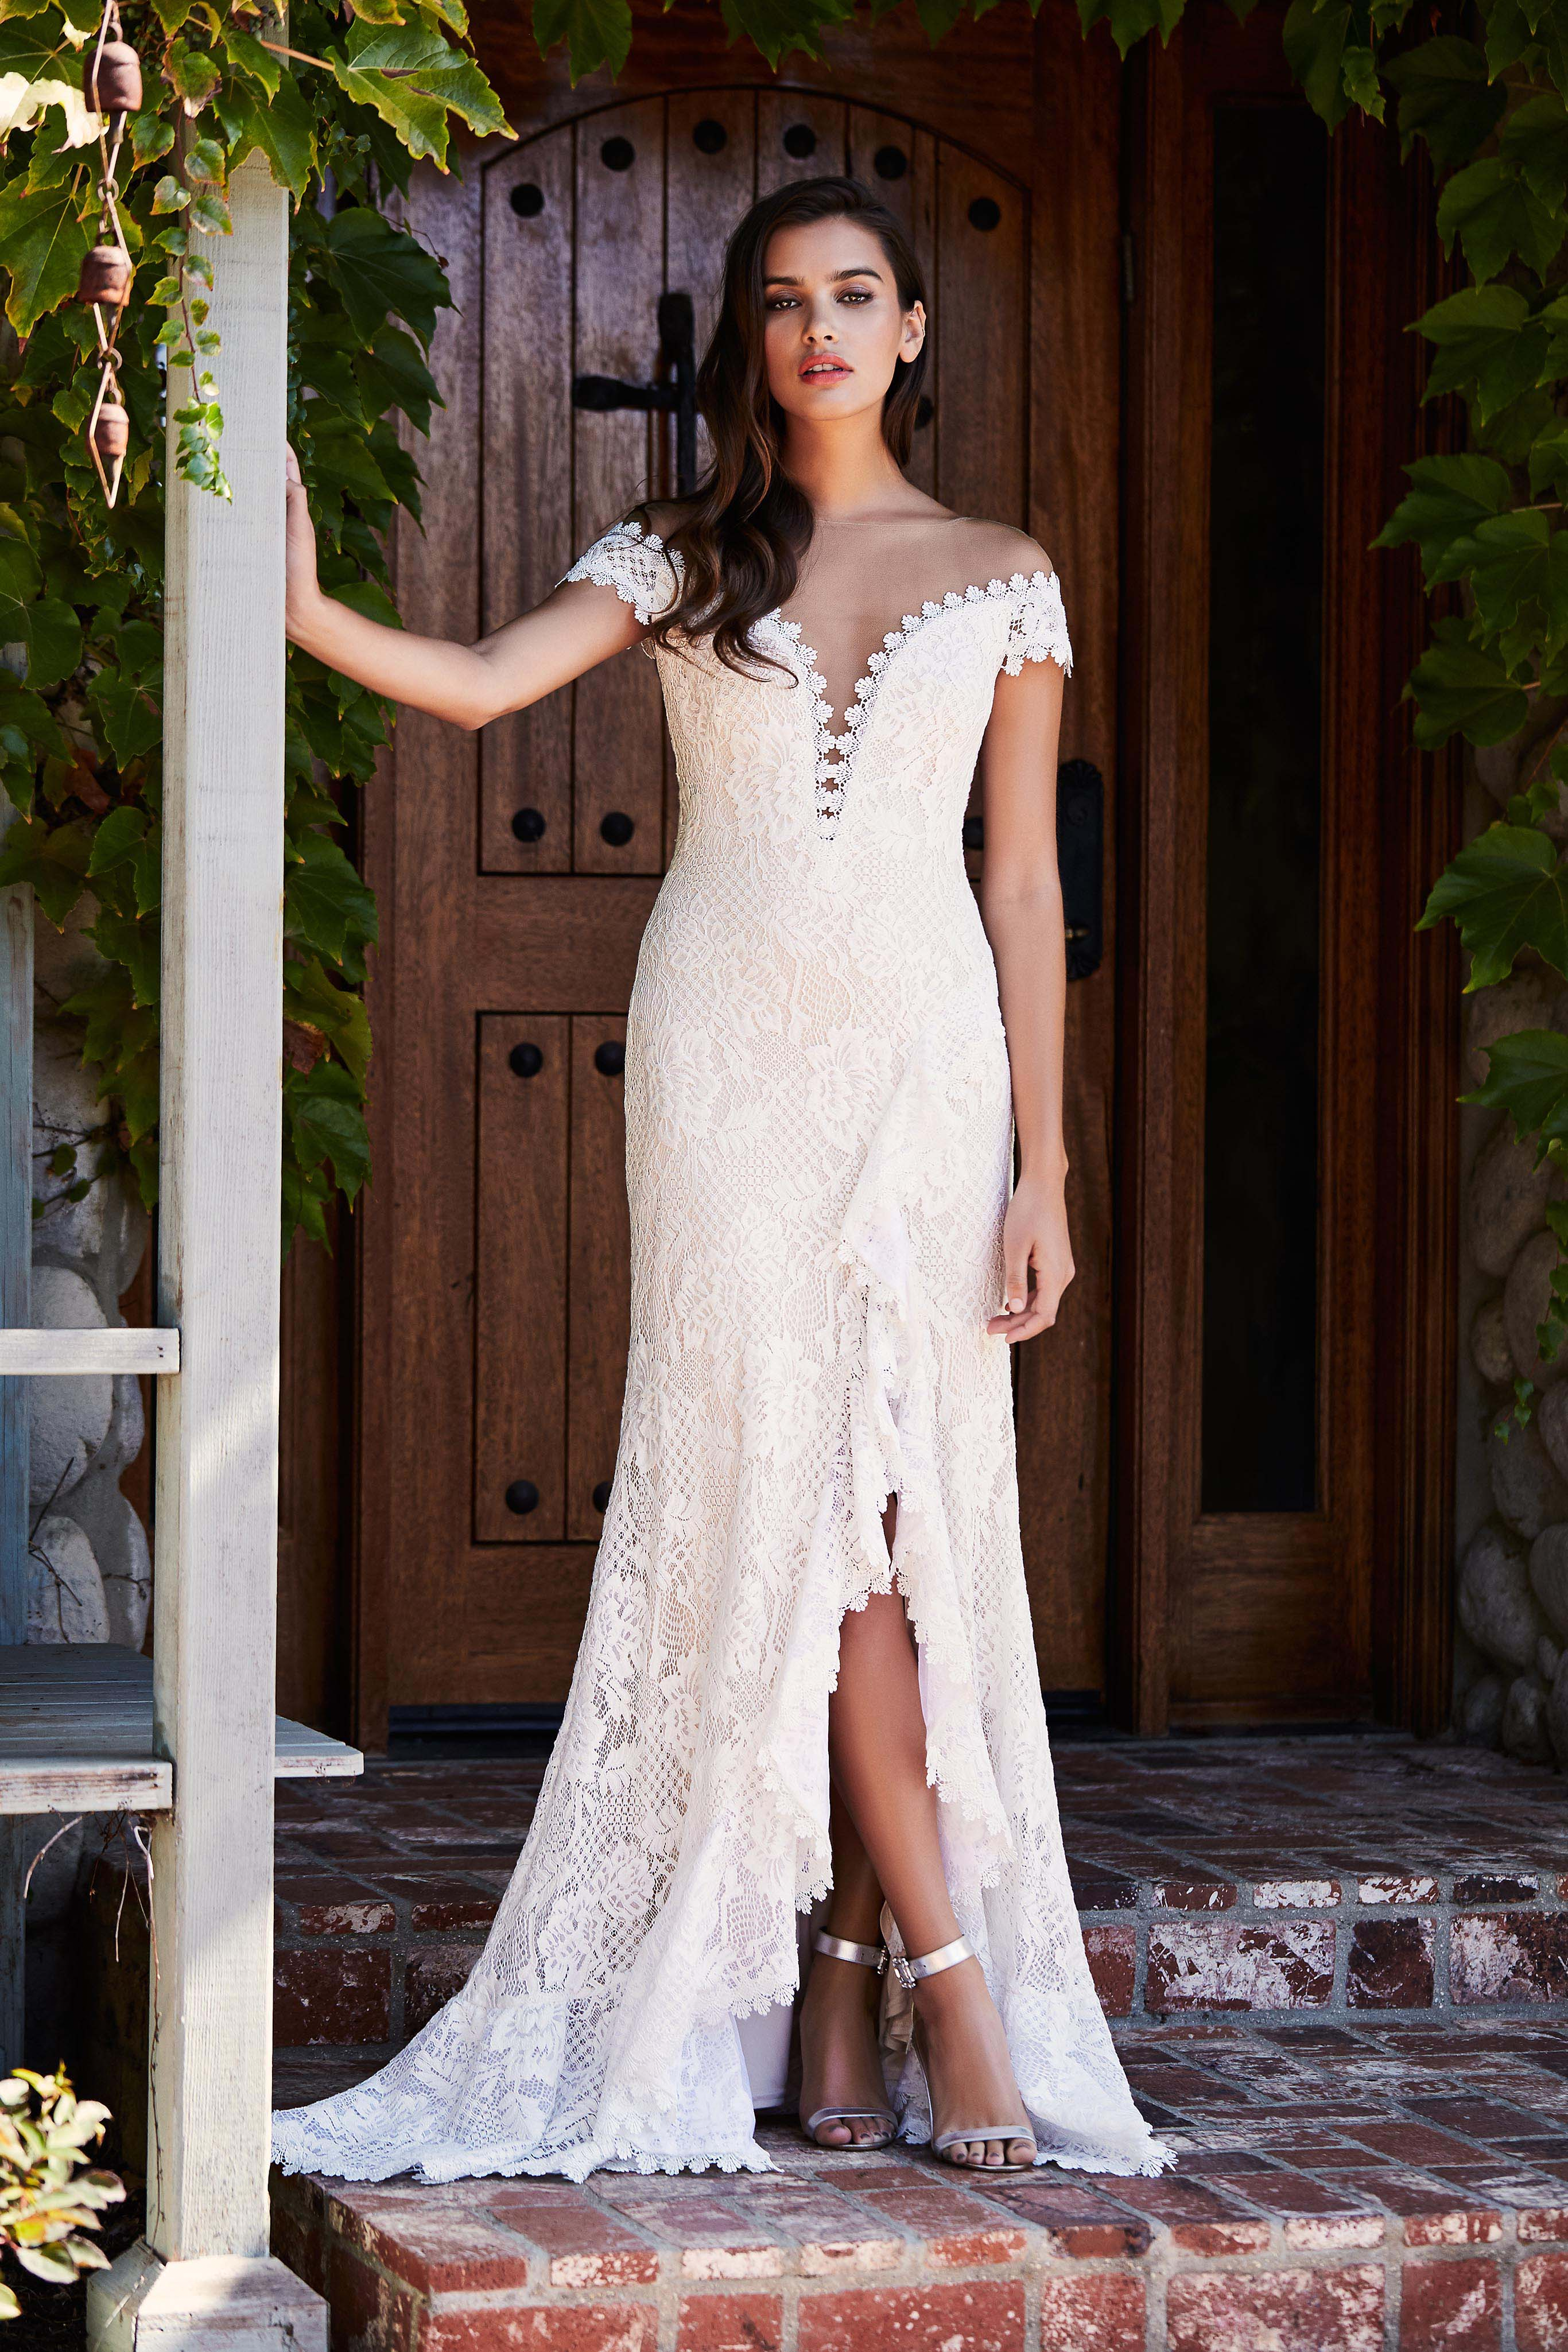 tadashi shoji wedding dress fall 2018 v-neck lace off the shoulder